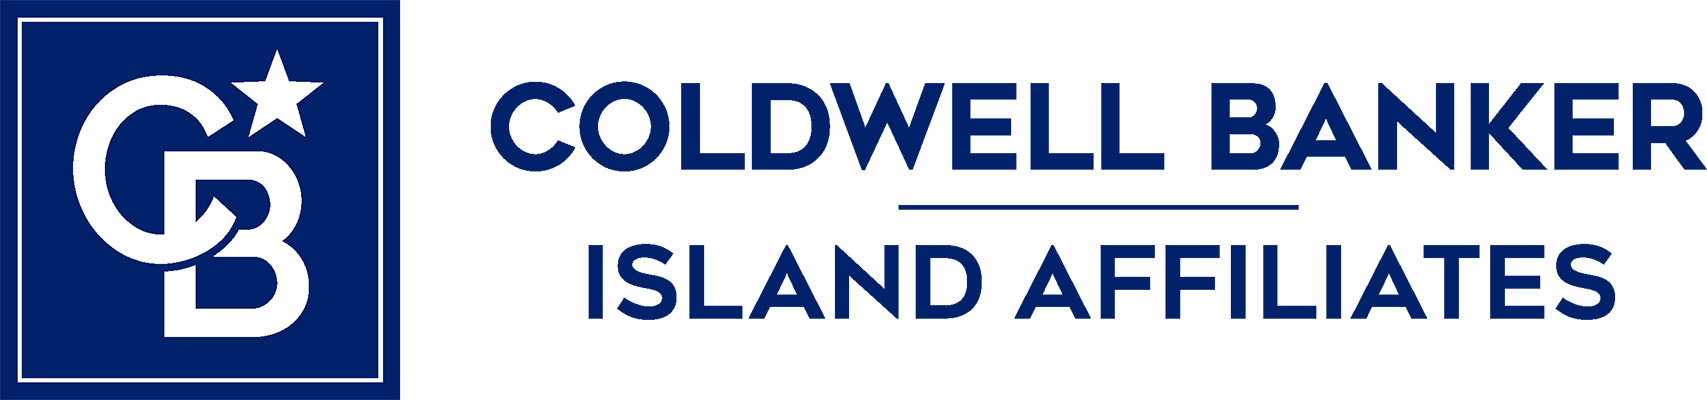 Caribbean Real Estate | Property For Sale in the Caribbean | Coldwell Banker Islands